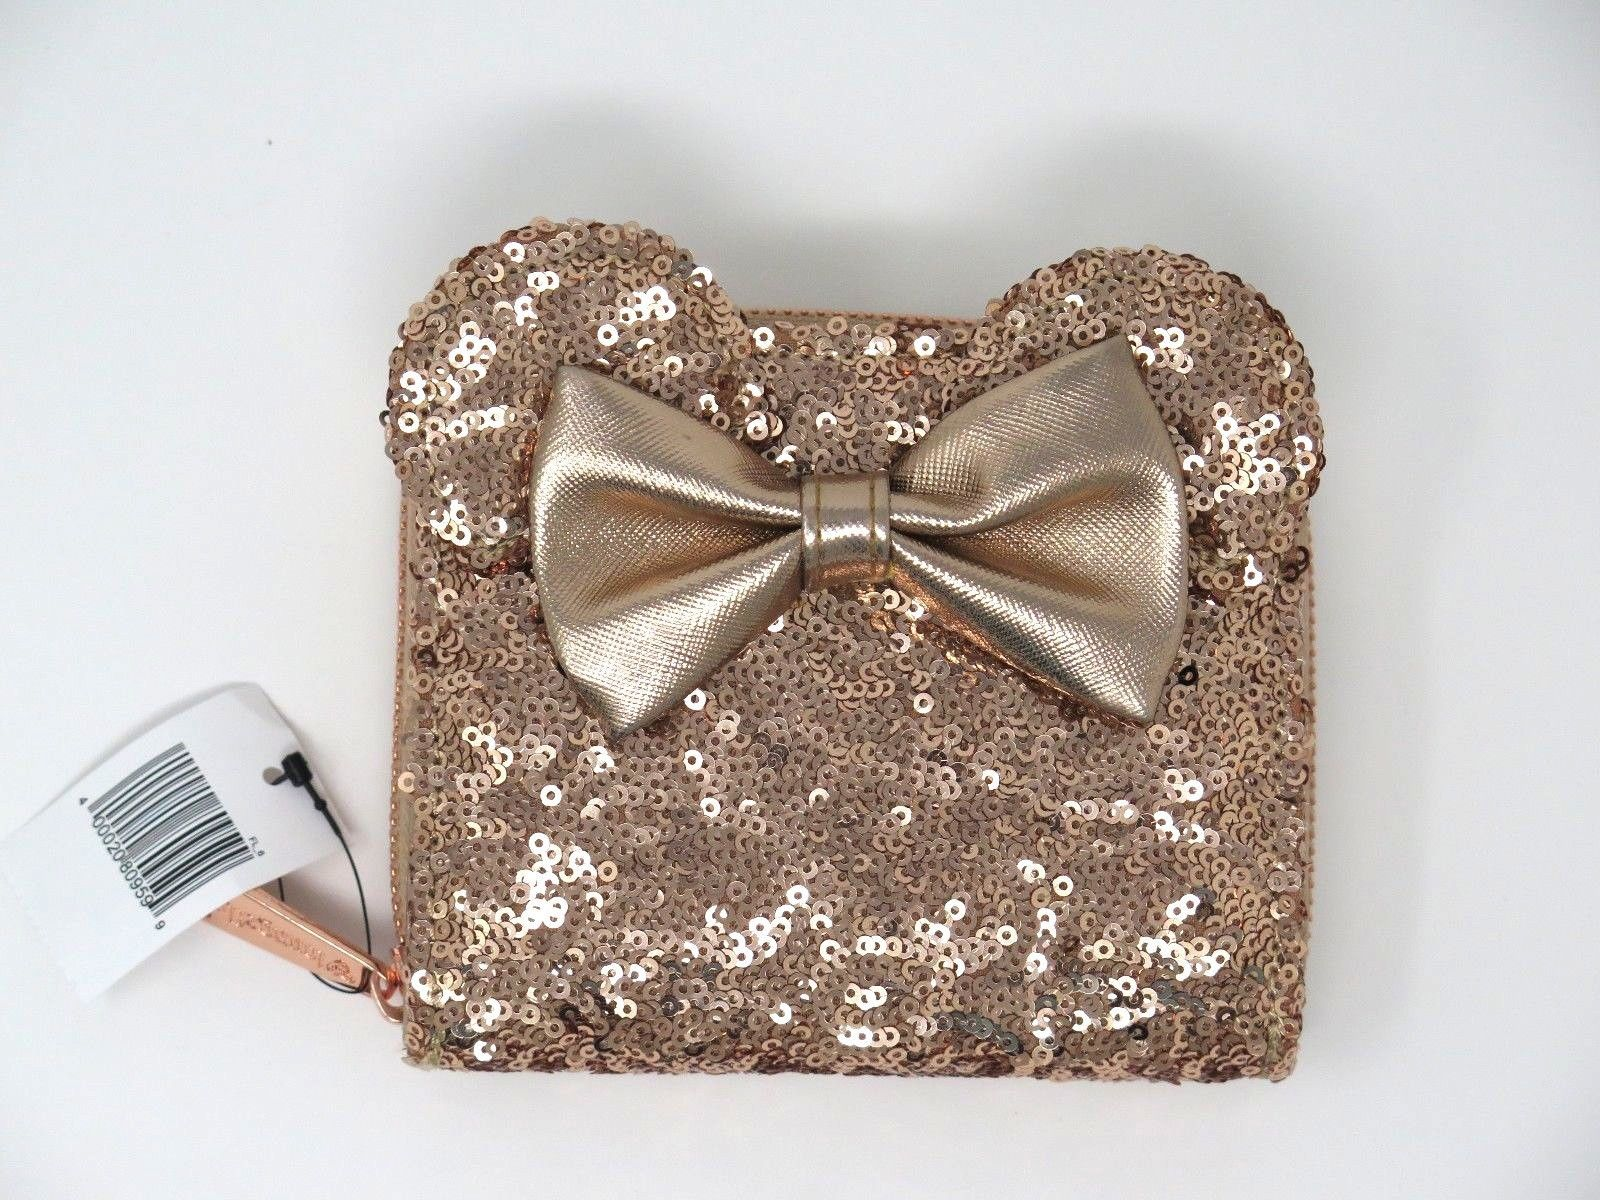 3e9910af2f4 Disney Parks Loungefly Rose Gold Sequined and similar items. 57